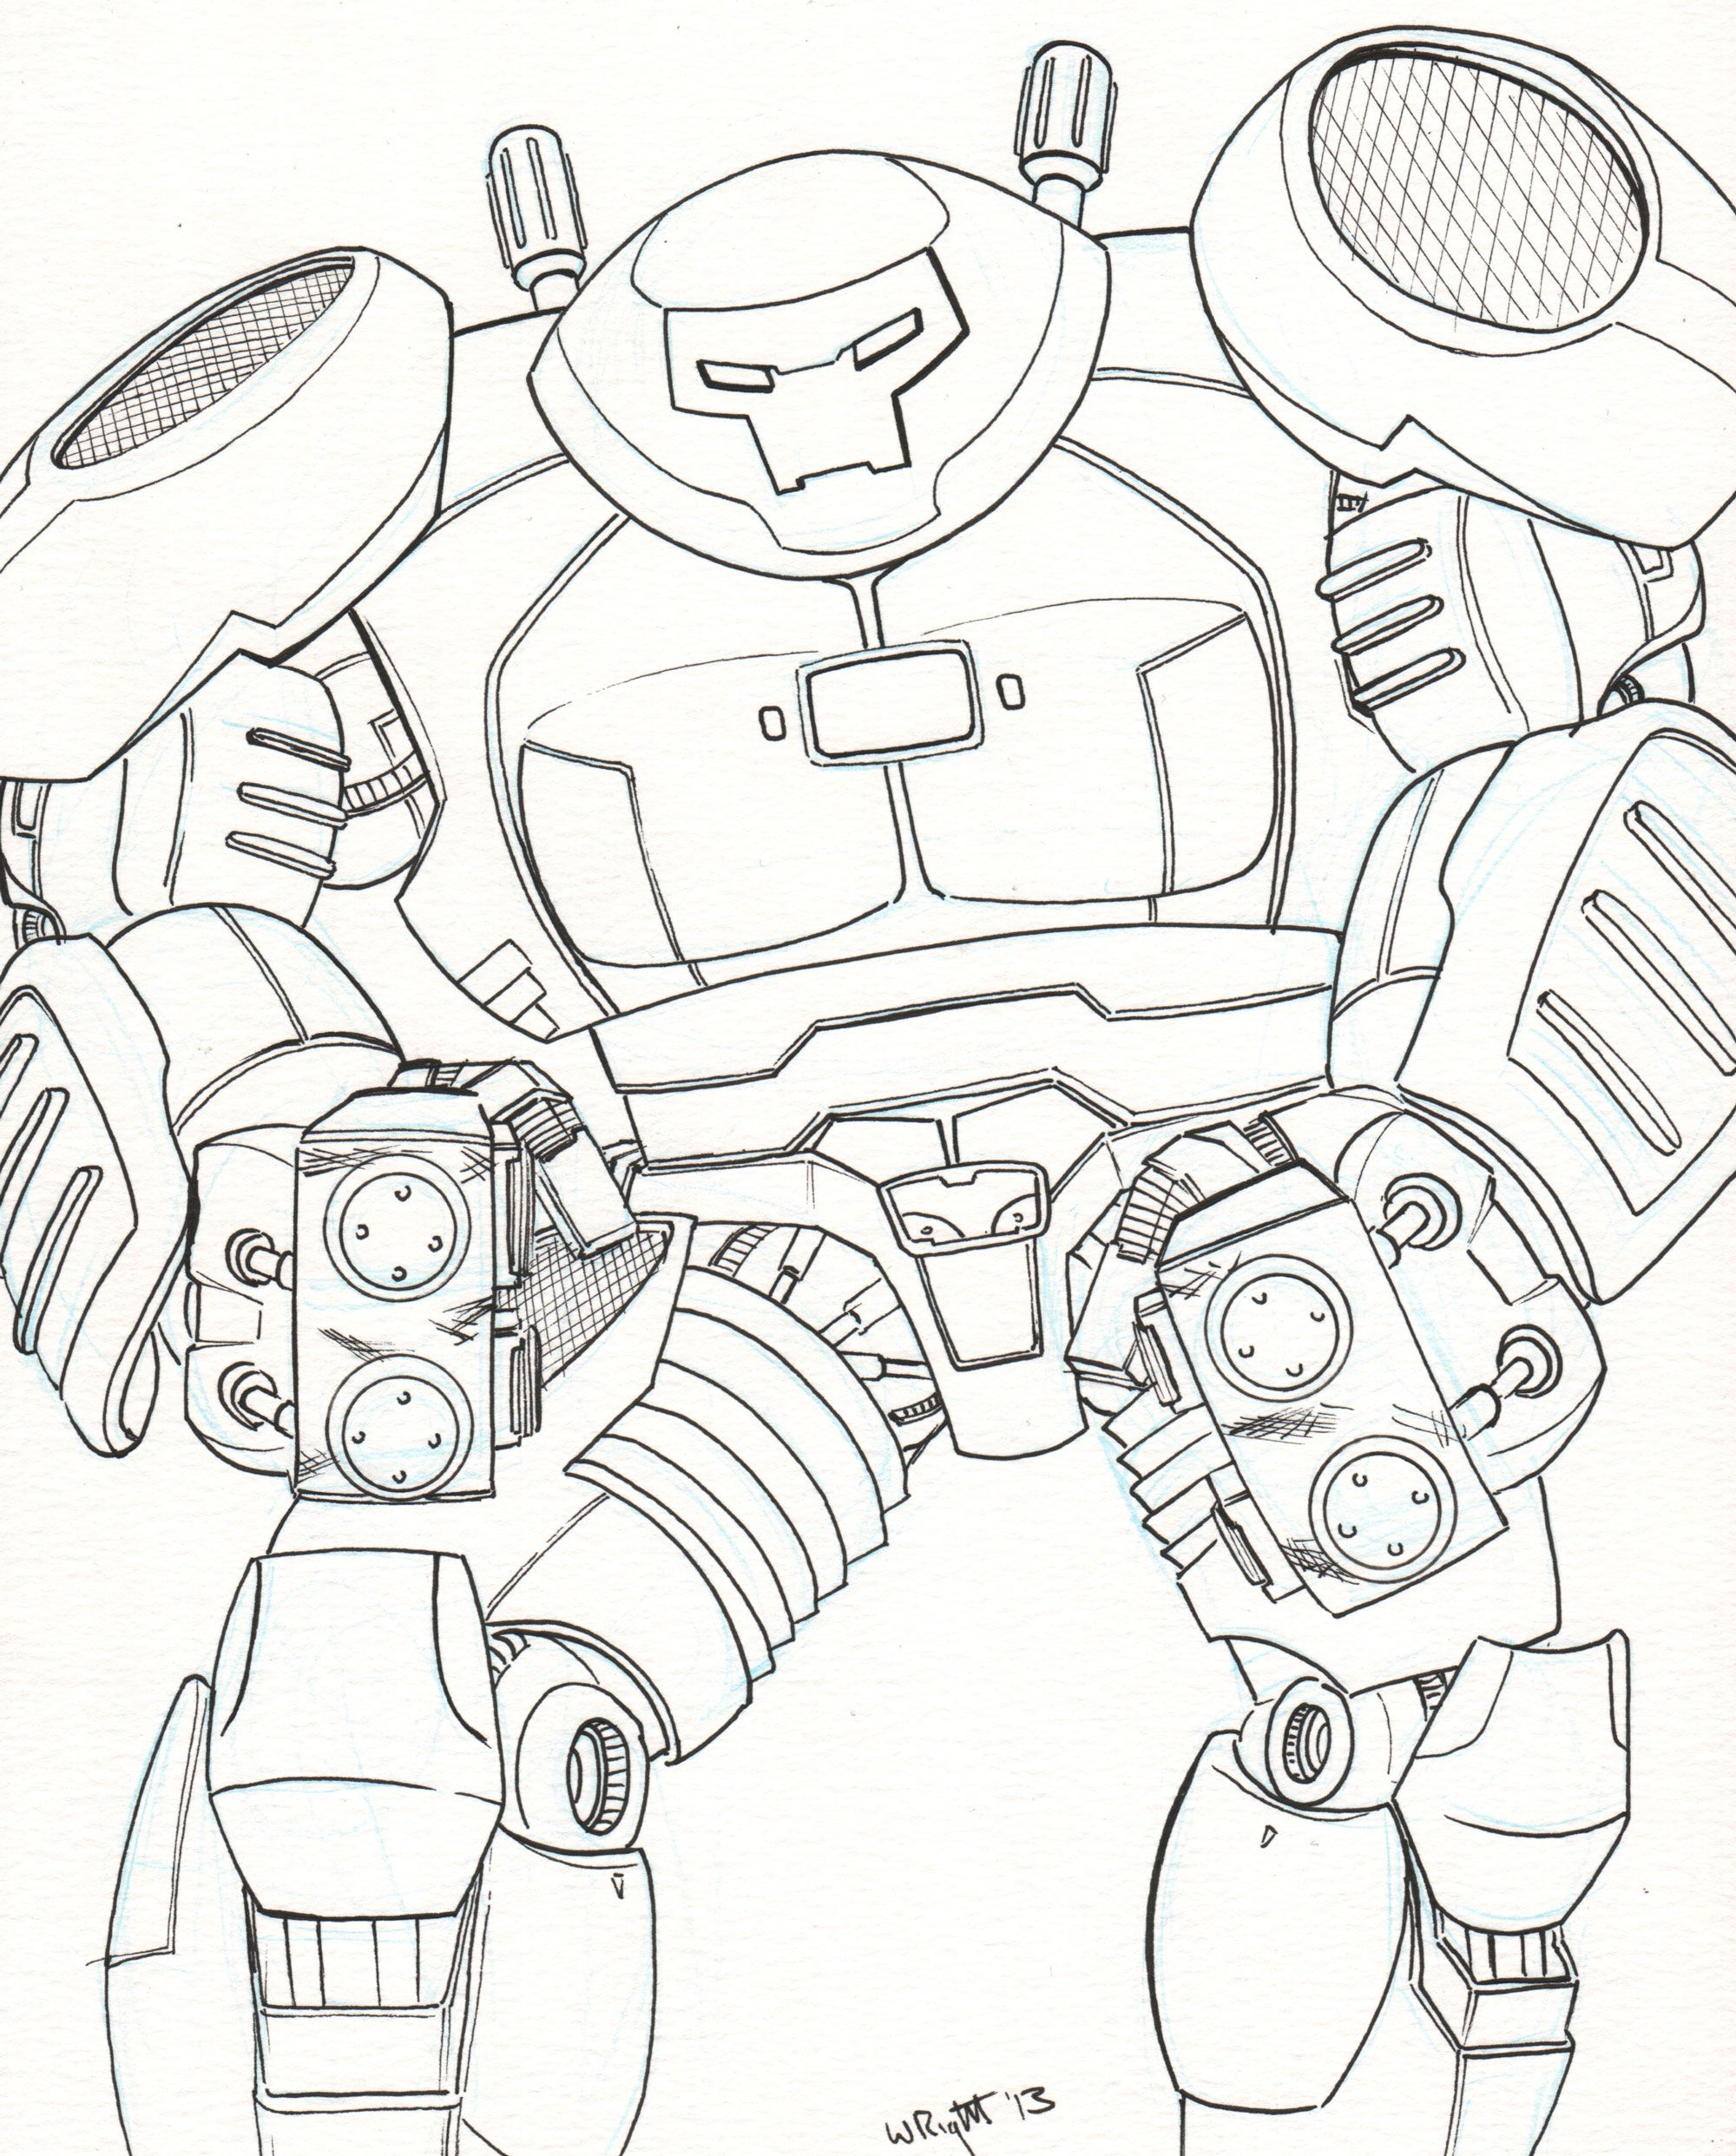 Iron Man Hulkbuster Vs Hulk Coloring Pages Sketch Coloring Page Avengers Coloring Pages Superhero Coloring Pages Hulk Coloring Pages